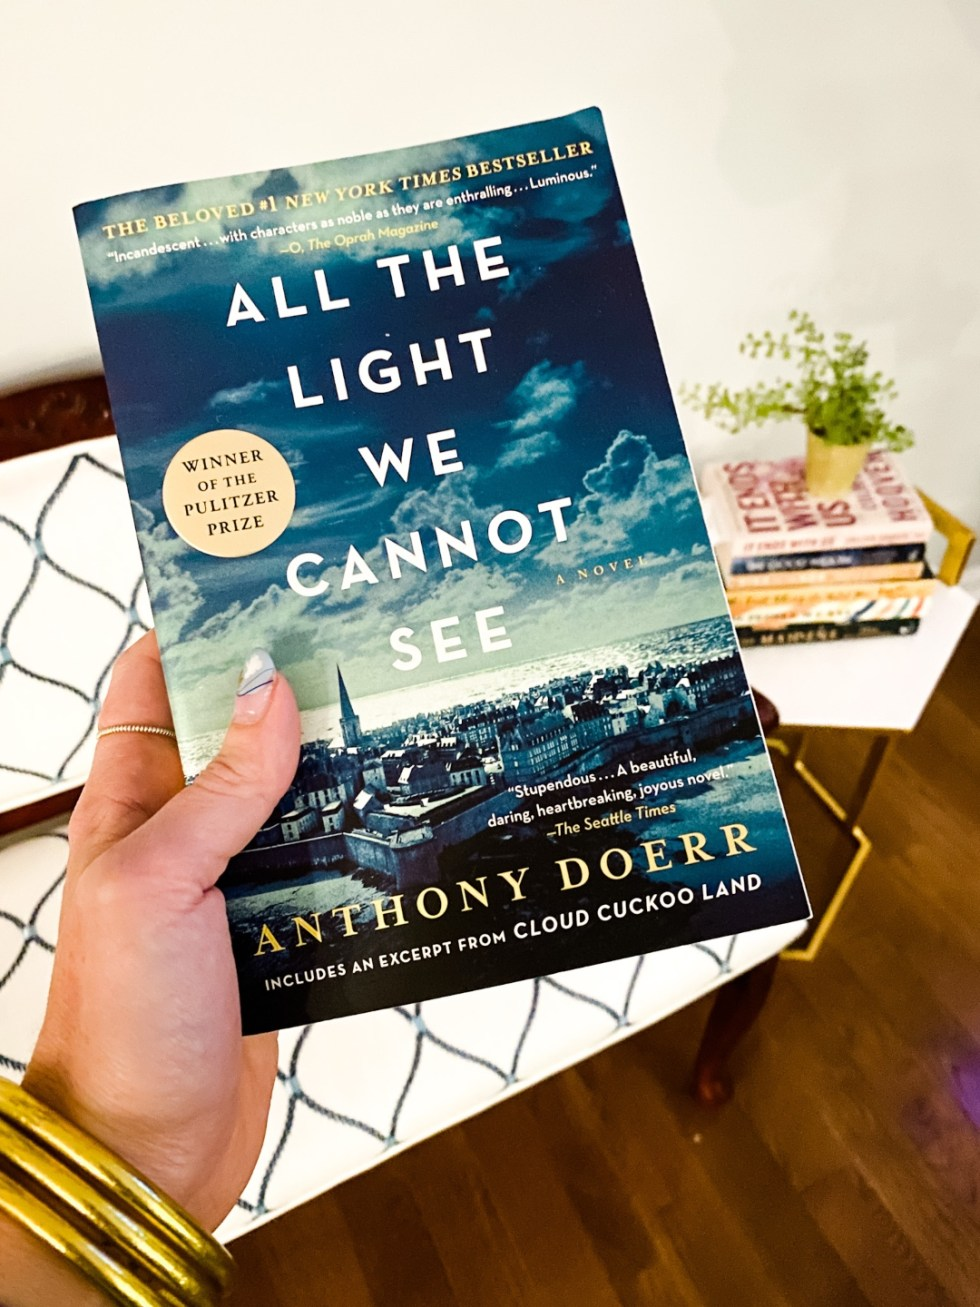 2021 Reading List: What I've Read So Far - I'm Fixin' To - @imfixintoblog | 2021 Reading List by popular NC lifestyle blog, I'm Fixin' To: image of All the Light We Cannot See.